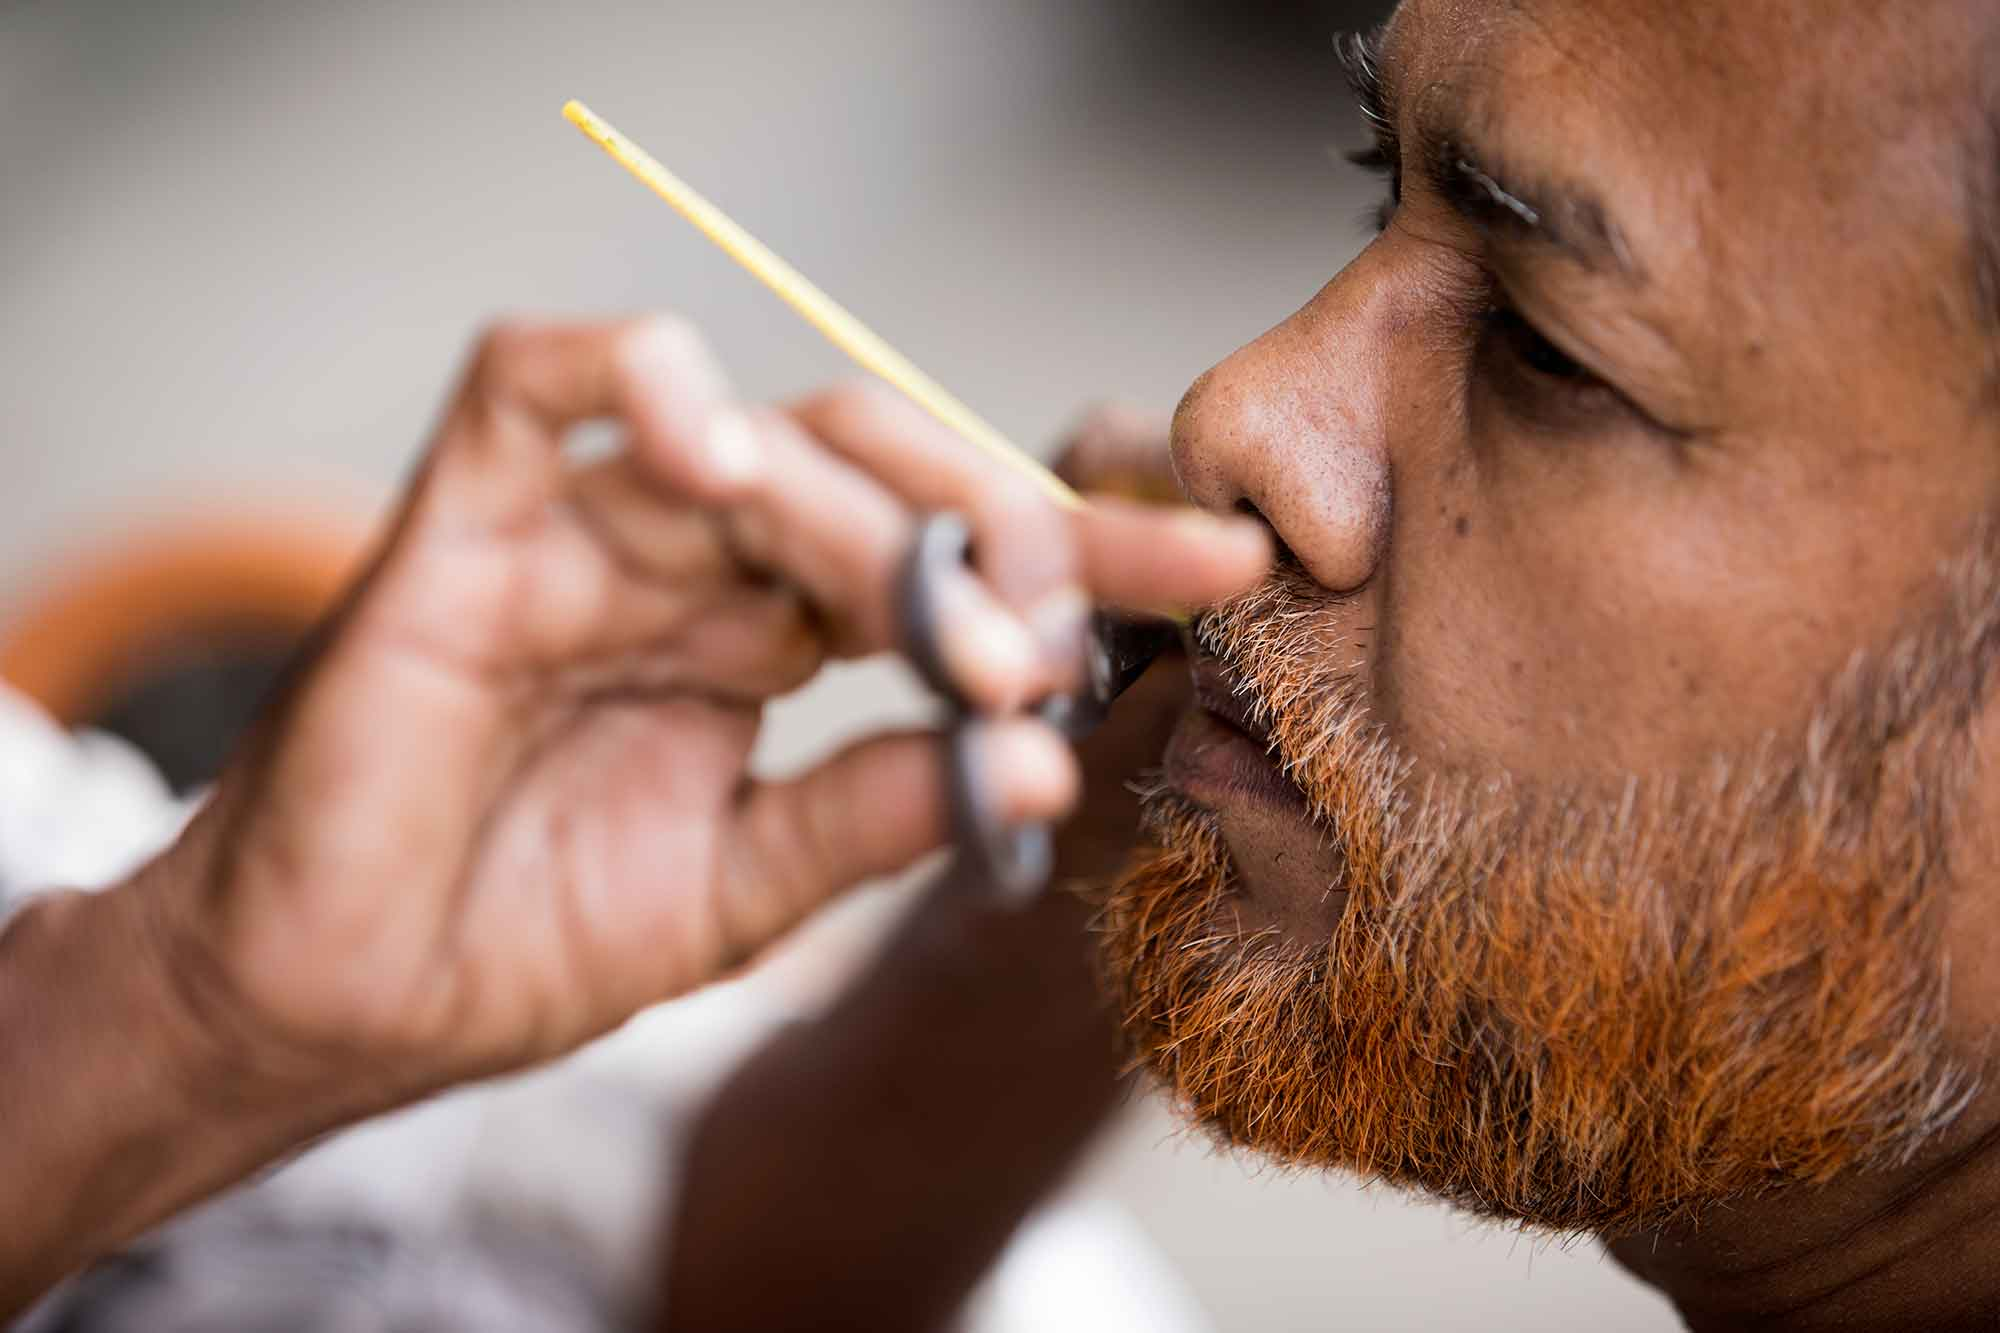 beard-trimming-streets-kolkata-india